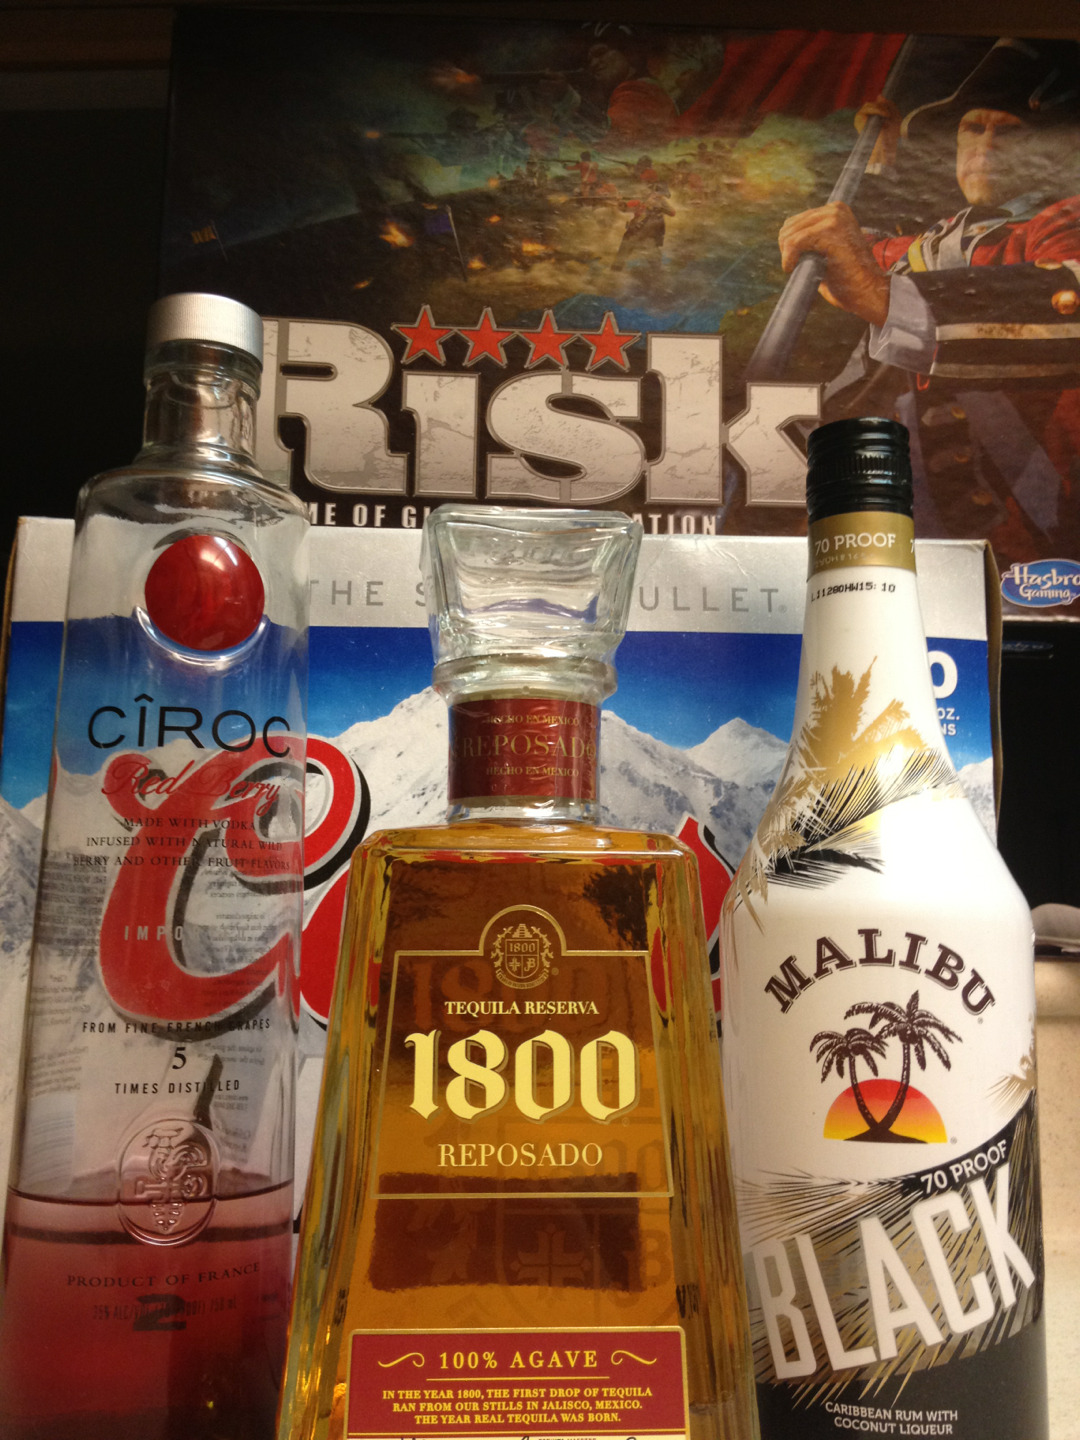 echoesofeverything:  nonameeverpleasenoname:  My Friday Night!  Risk + Alcohol, I'm sure we'll figure somethingg out  doing it right  Play responsibly